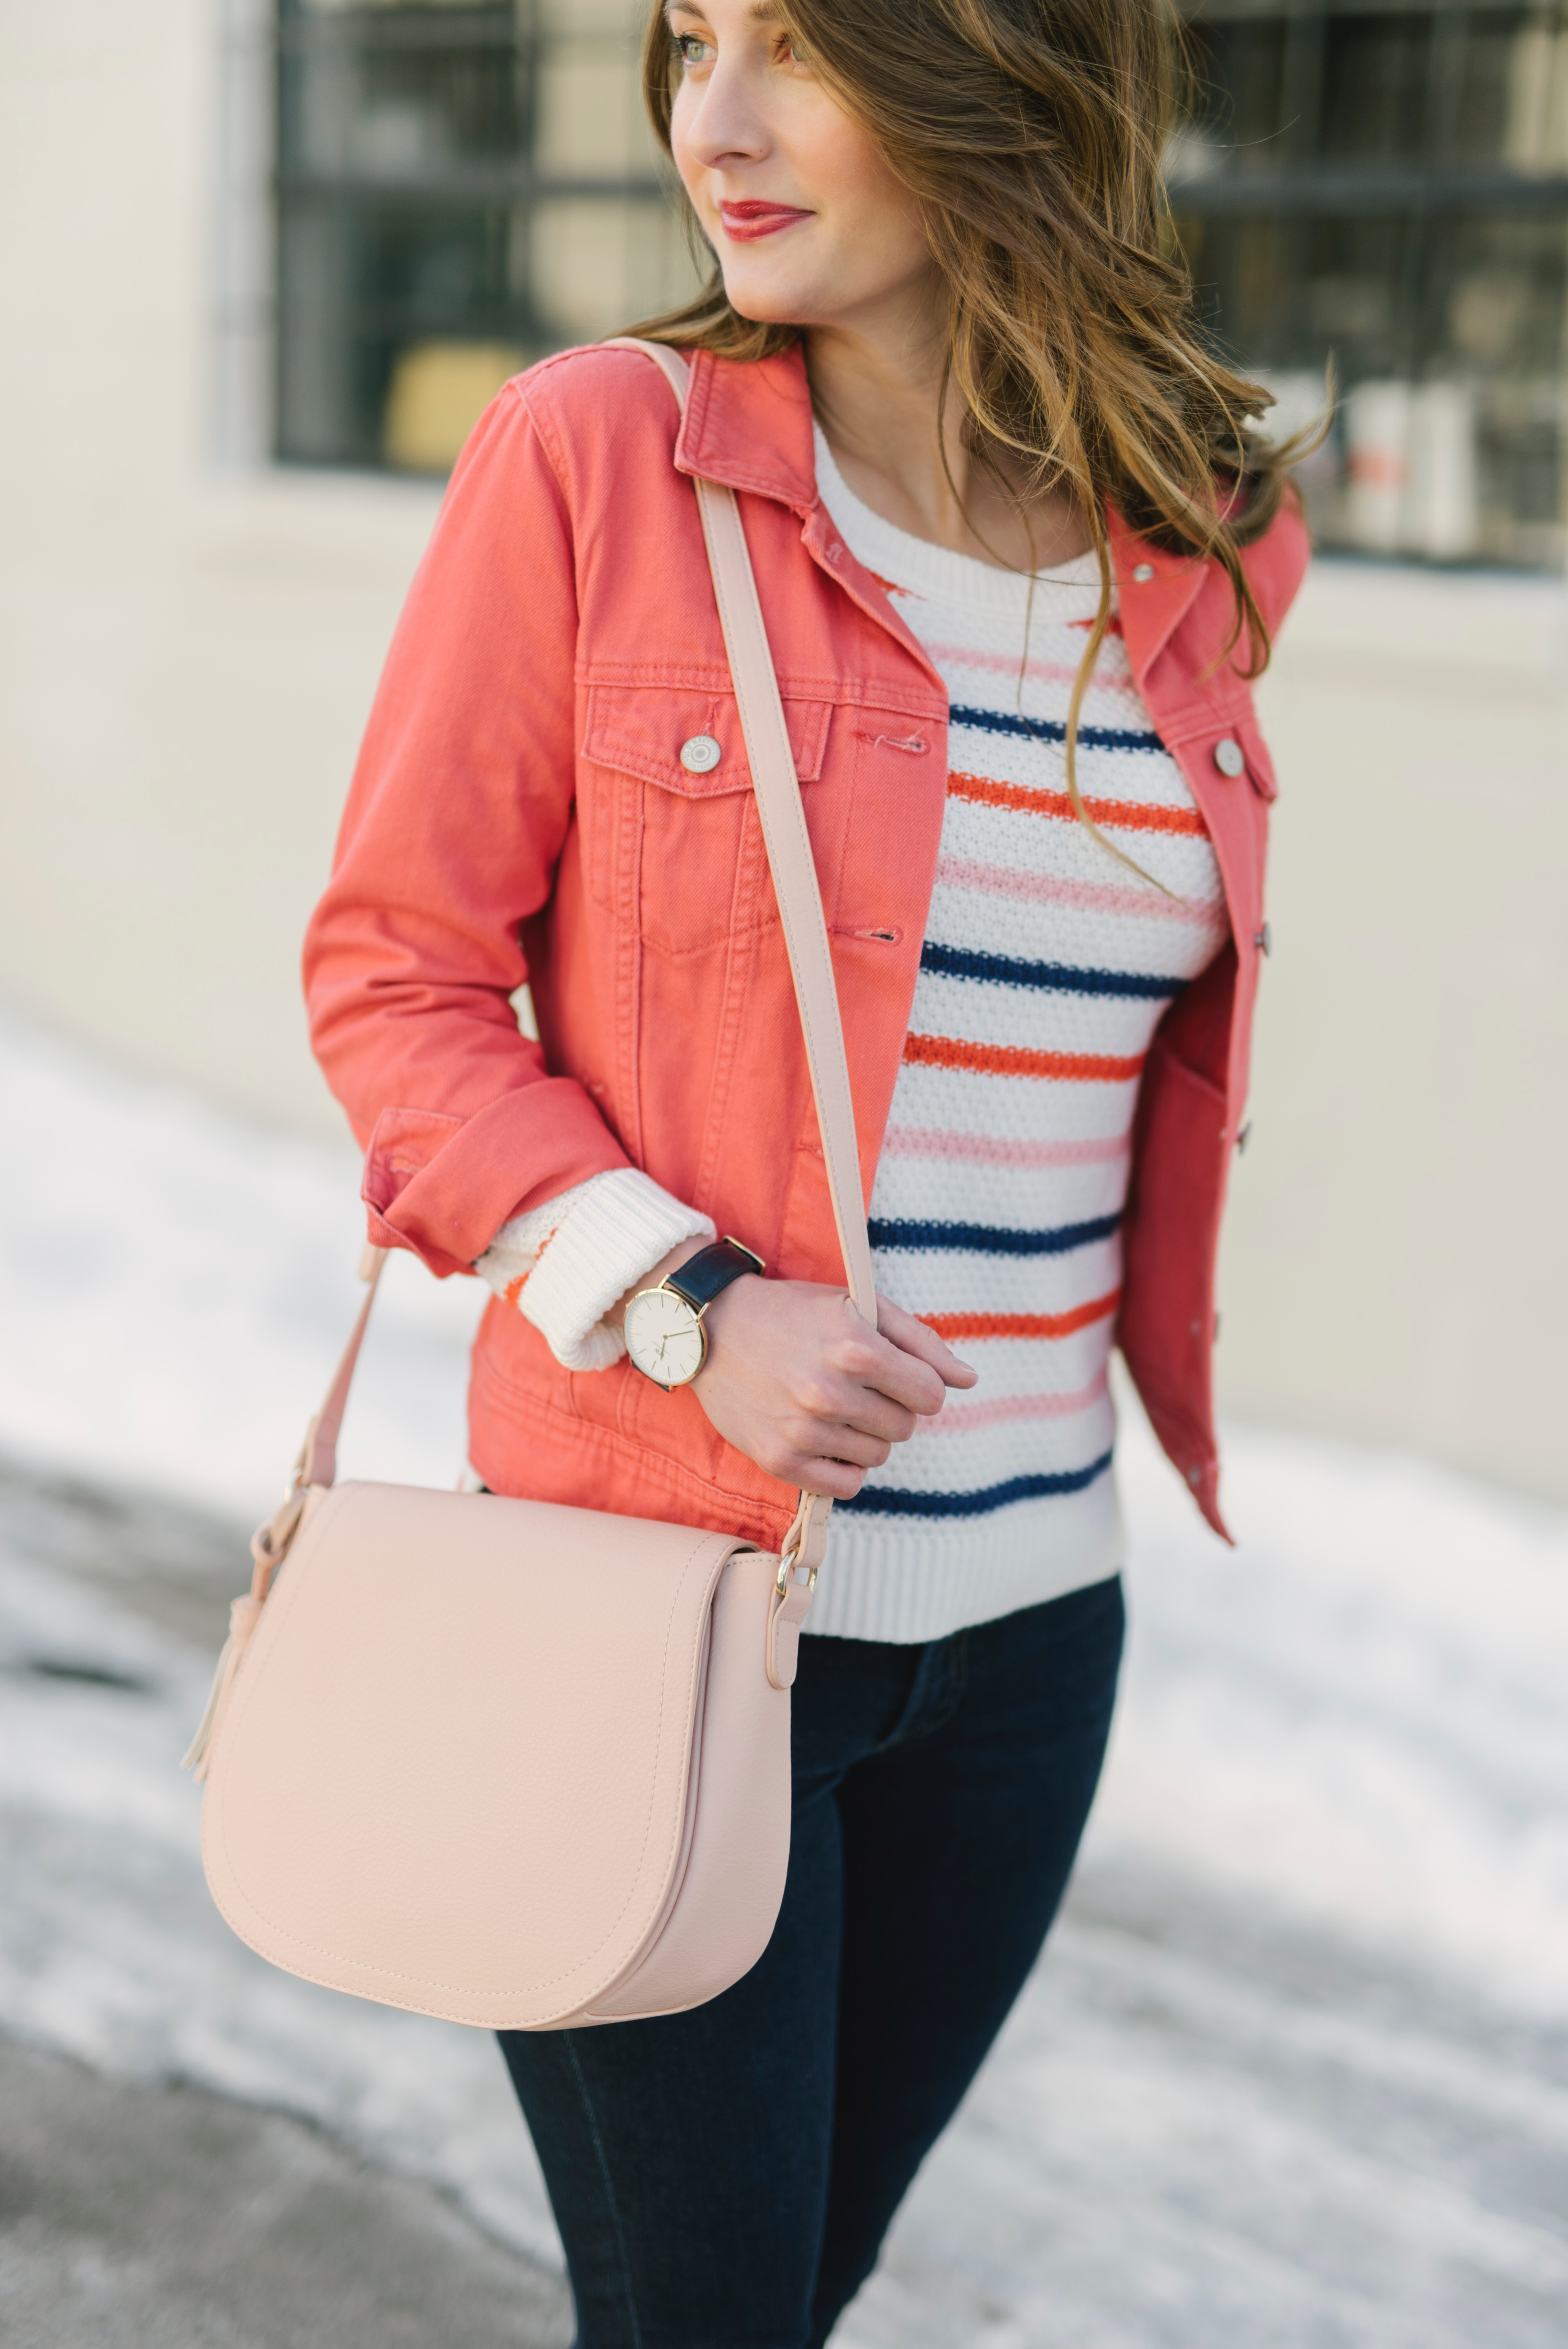 casual spring outfit idea | via Finding Beautiful Truth